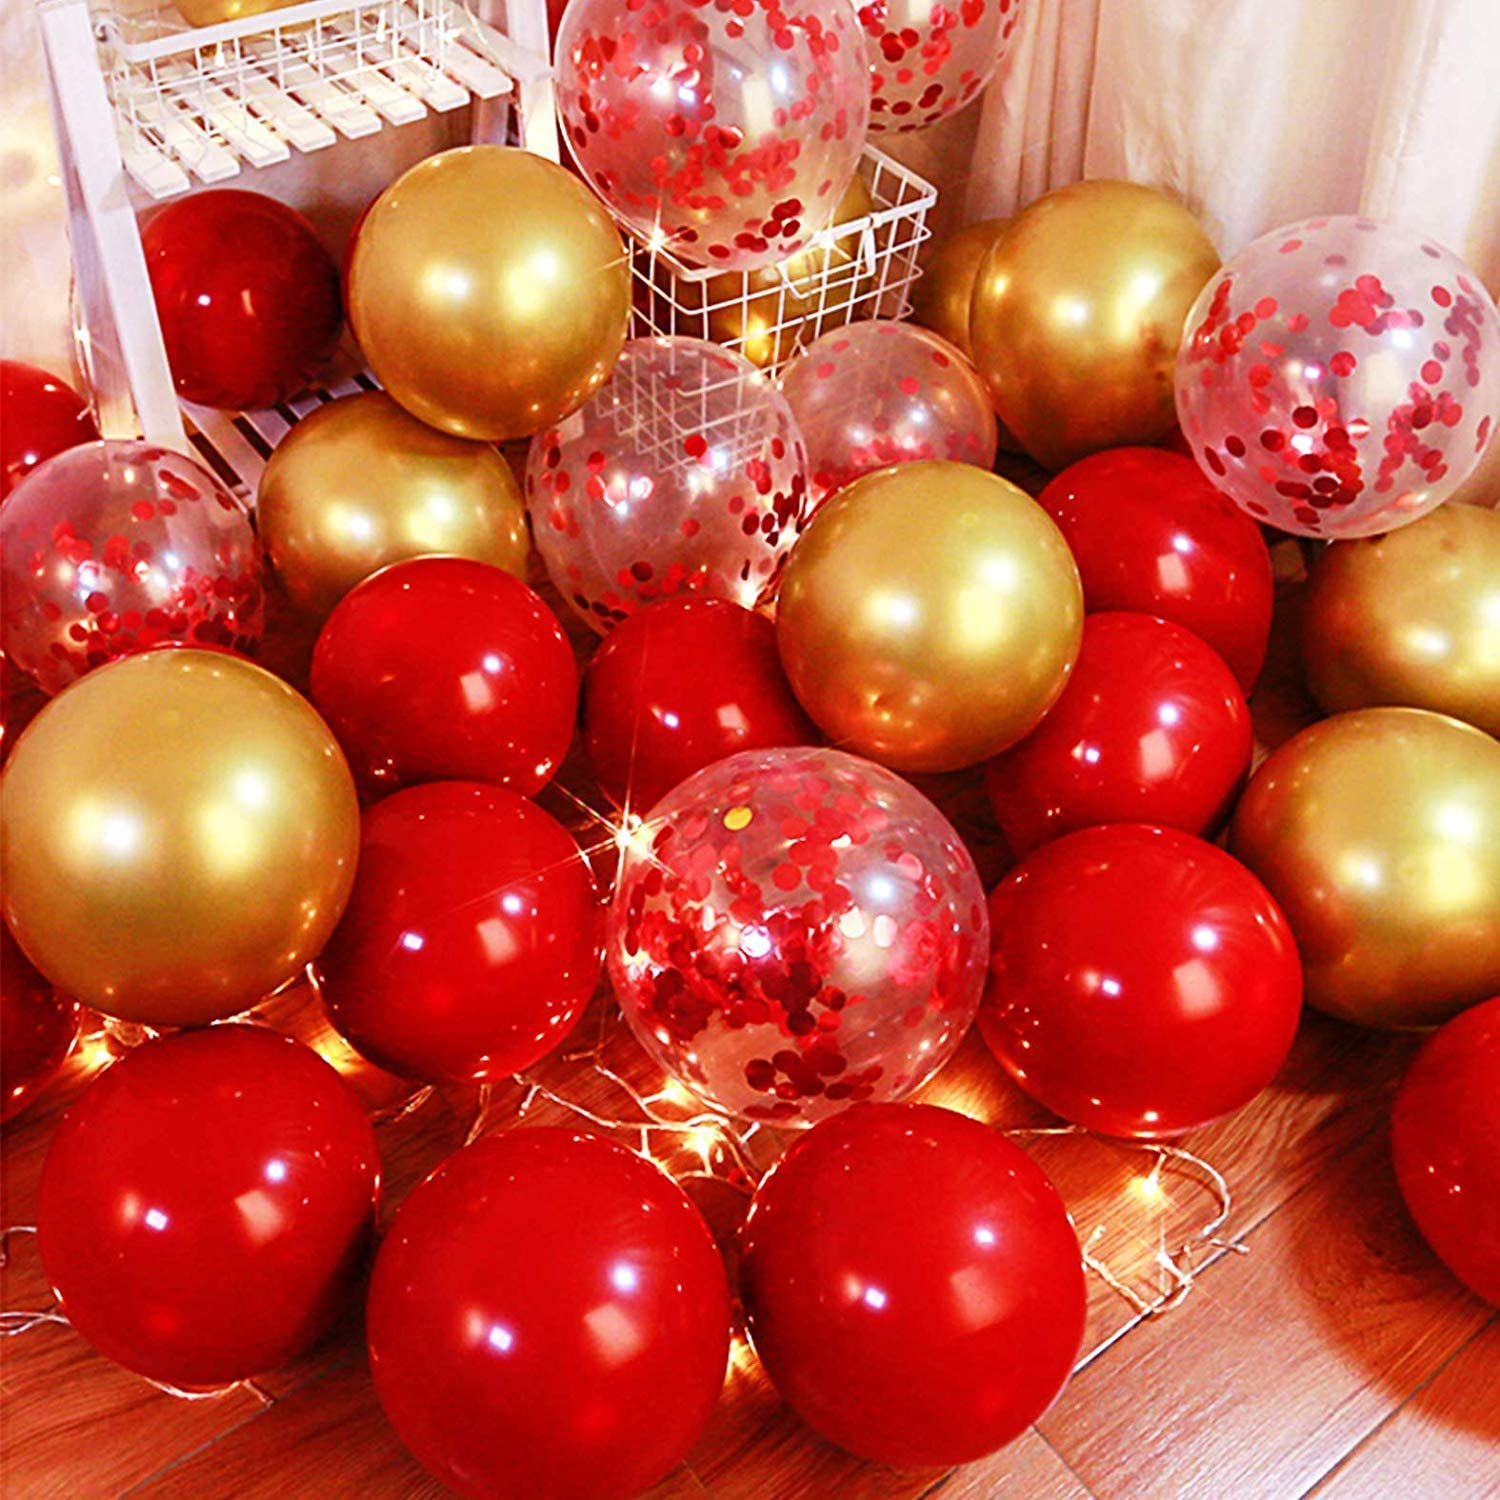 zorpia 100 Pieces Red and Gold Balloons Kit Latex Gold Metallic Balloons Red Confetti Balloons for Wedding Bridal Shower Birthday Party Anniversary Decoration